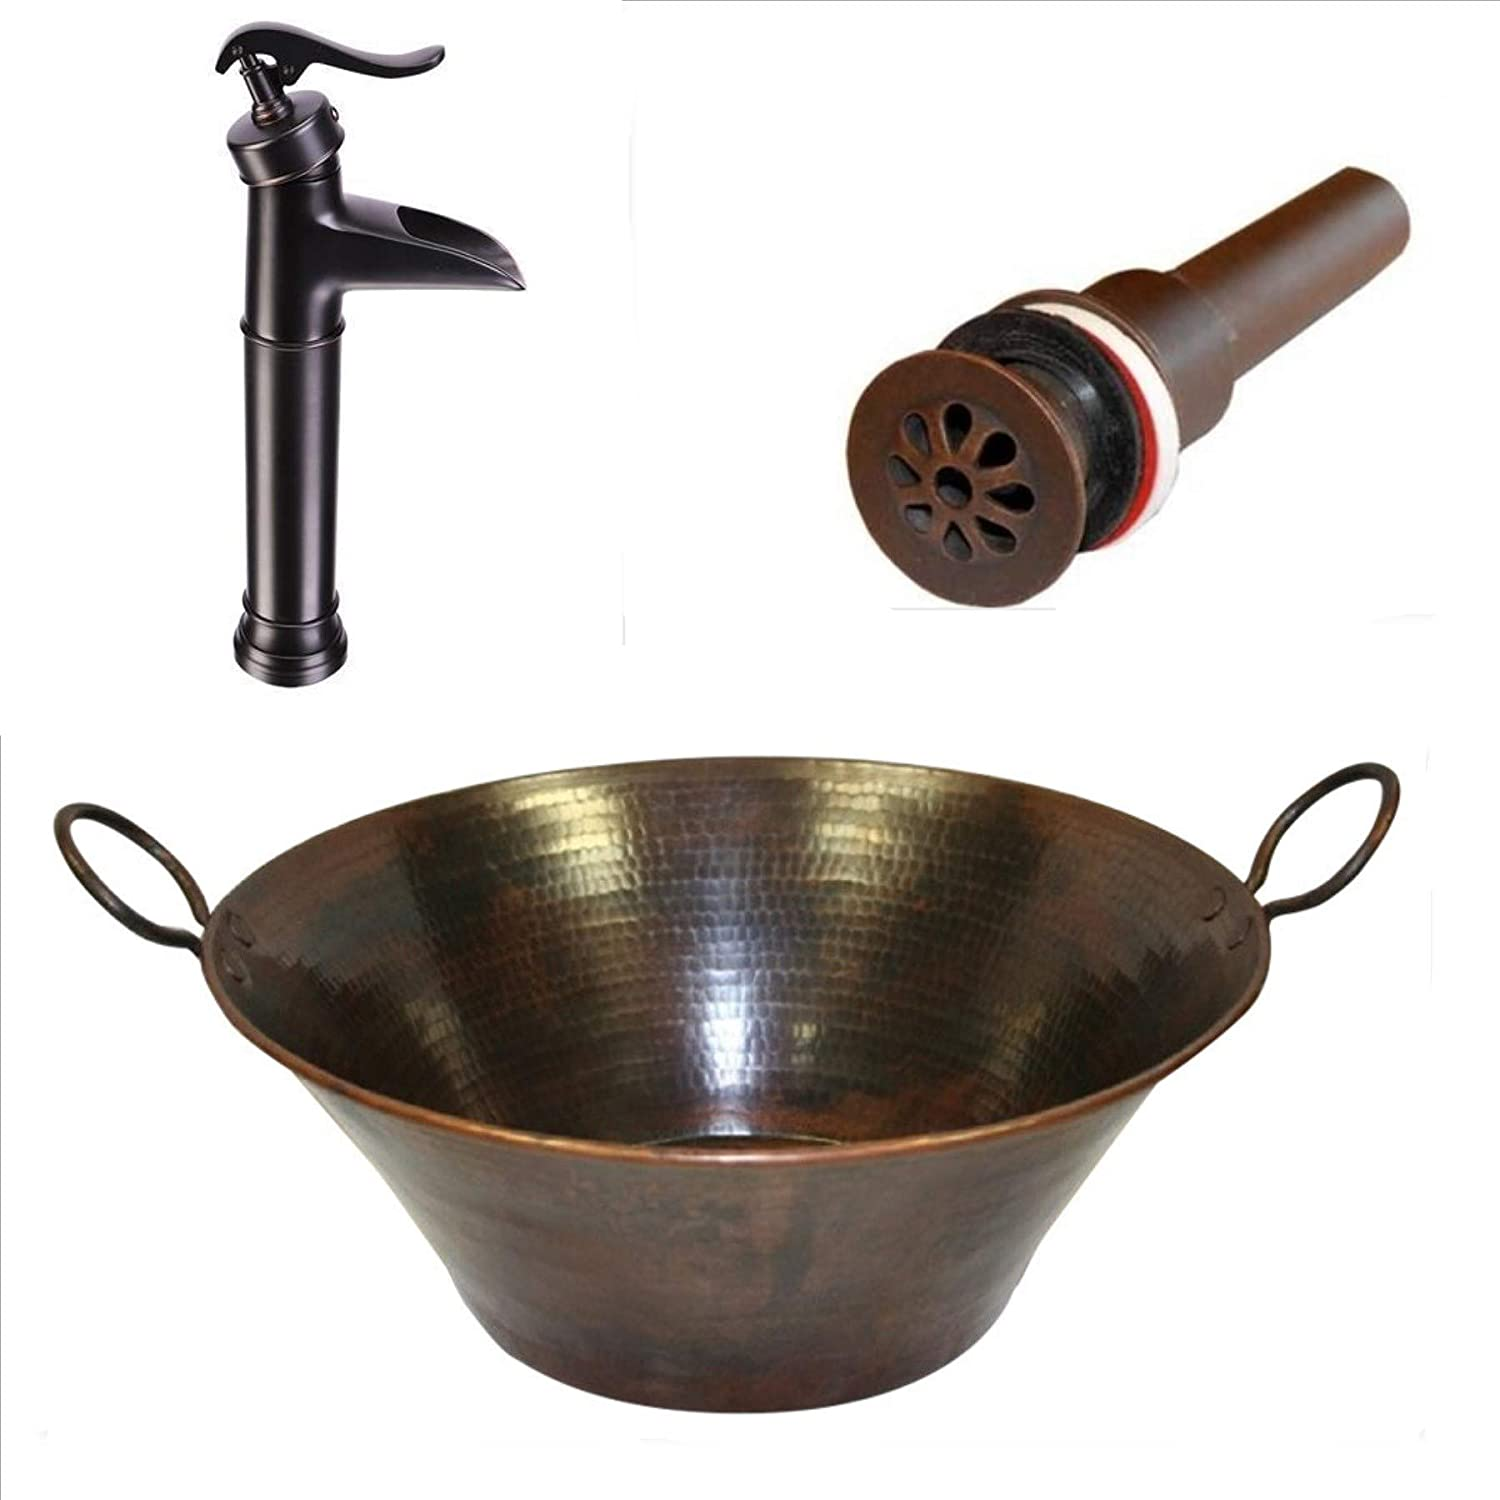 Small 14 Round Copper Bath Sink Vessel Or Drop-in Sink by SimplyCopper